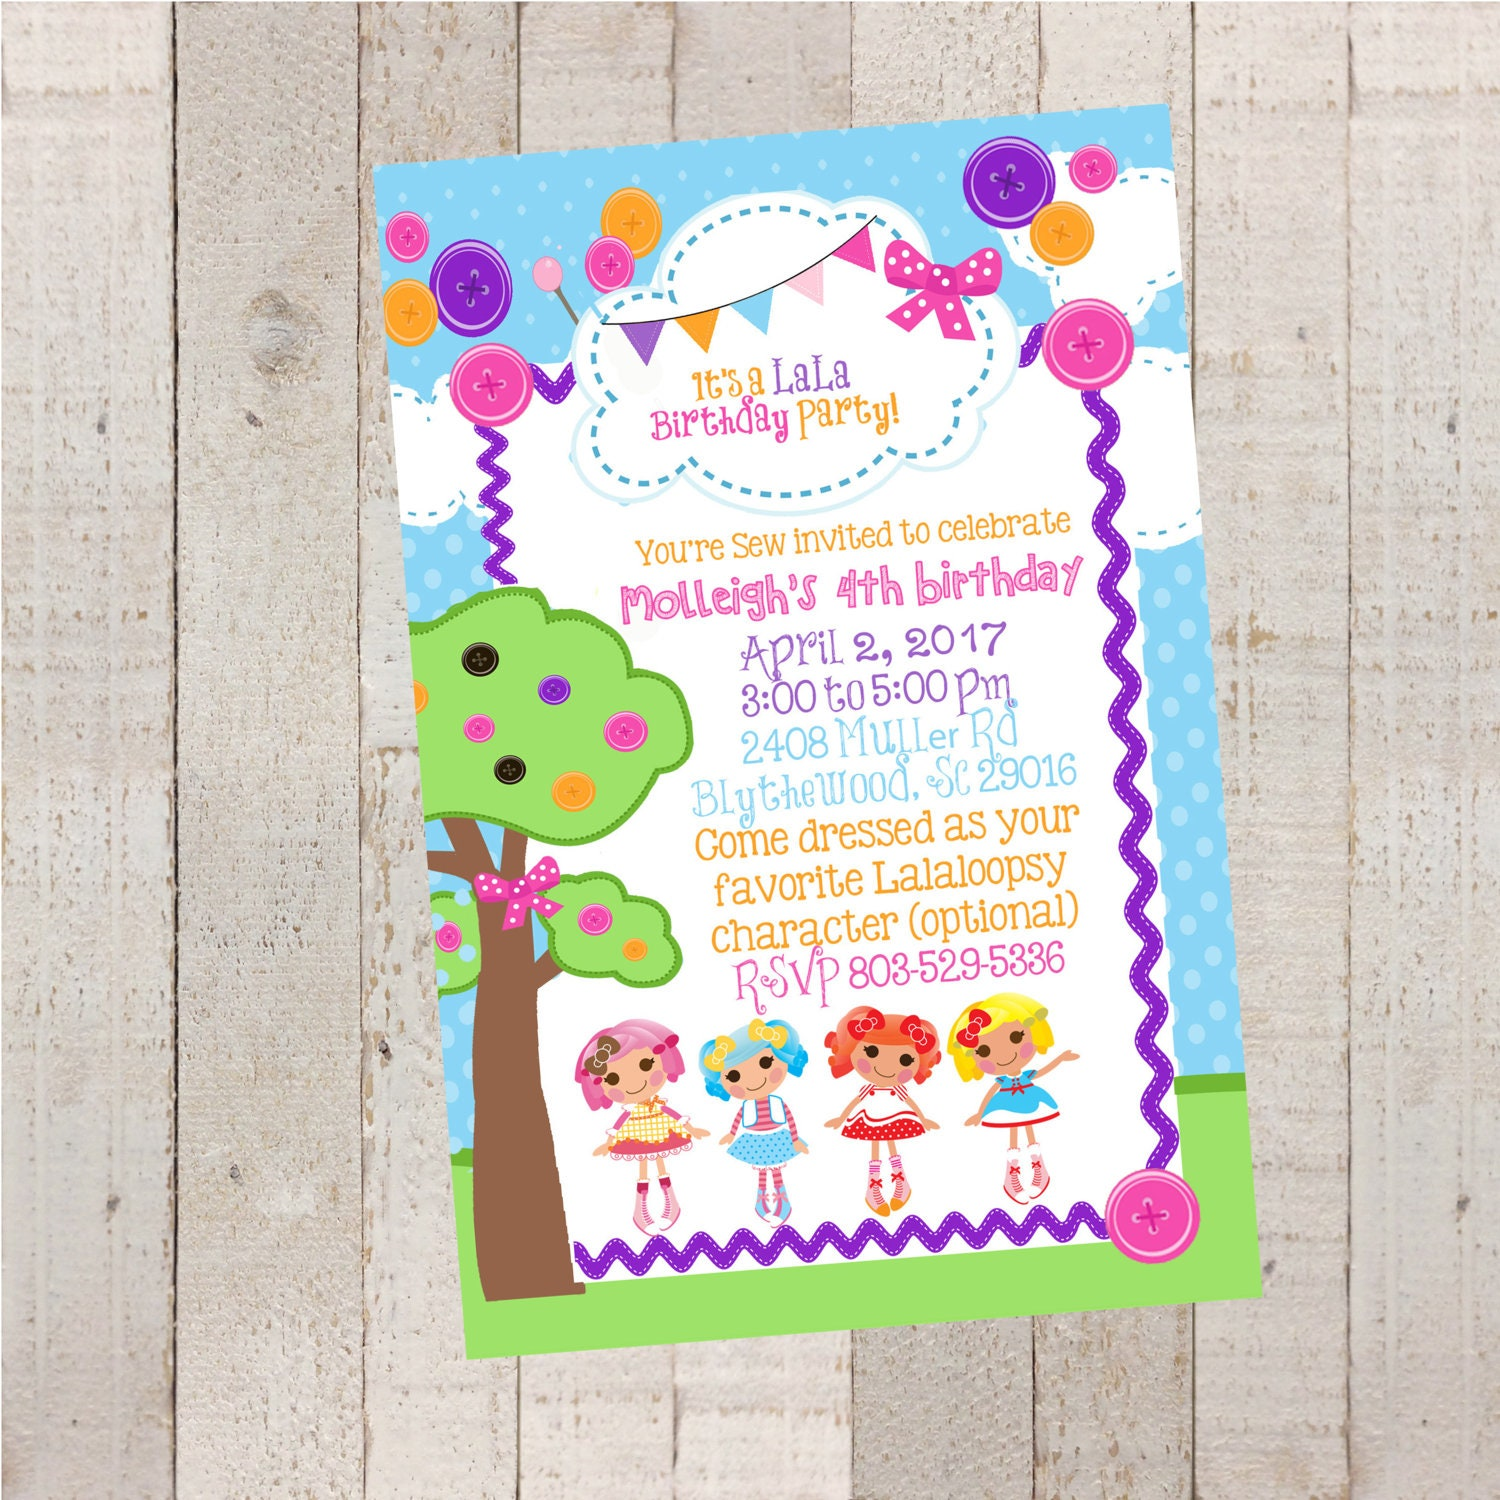 Lalaloopsy Birthday Invitations Birthday Birthday